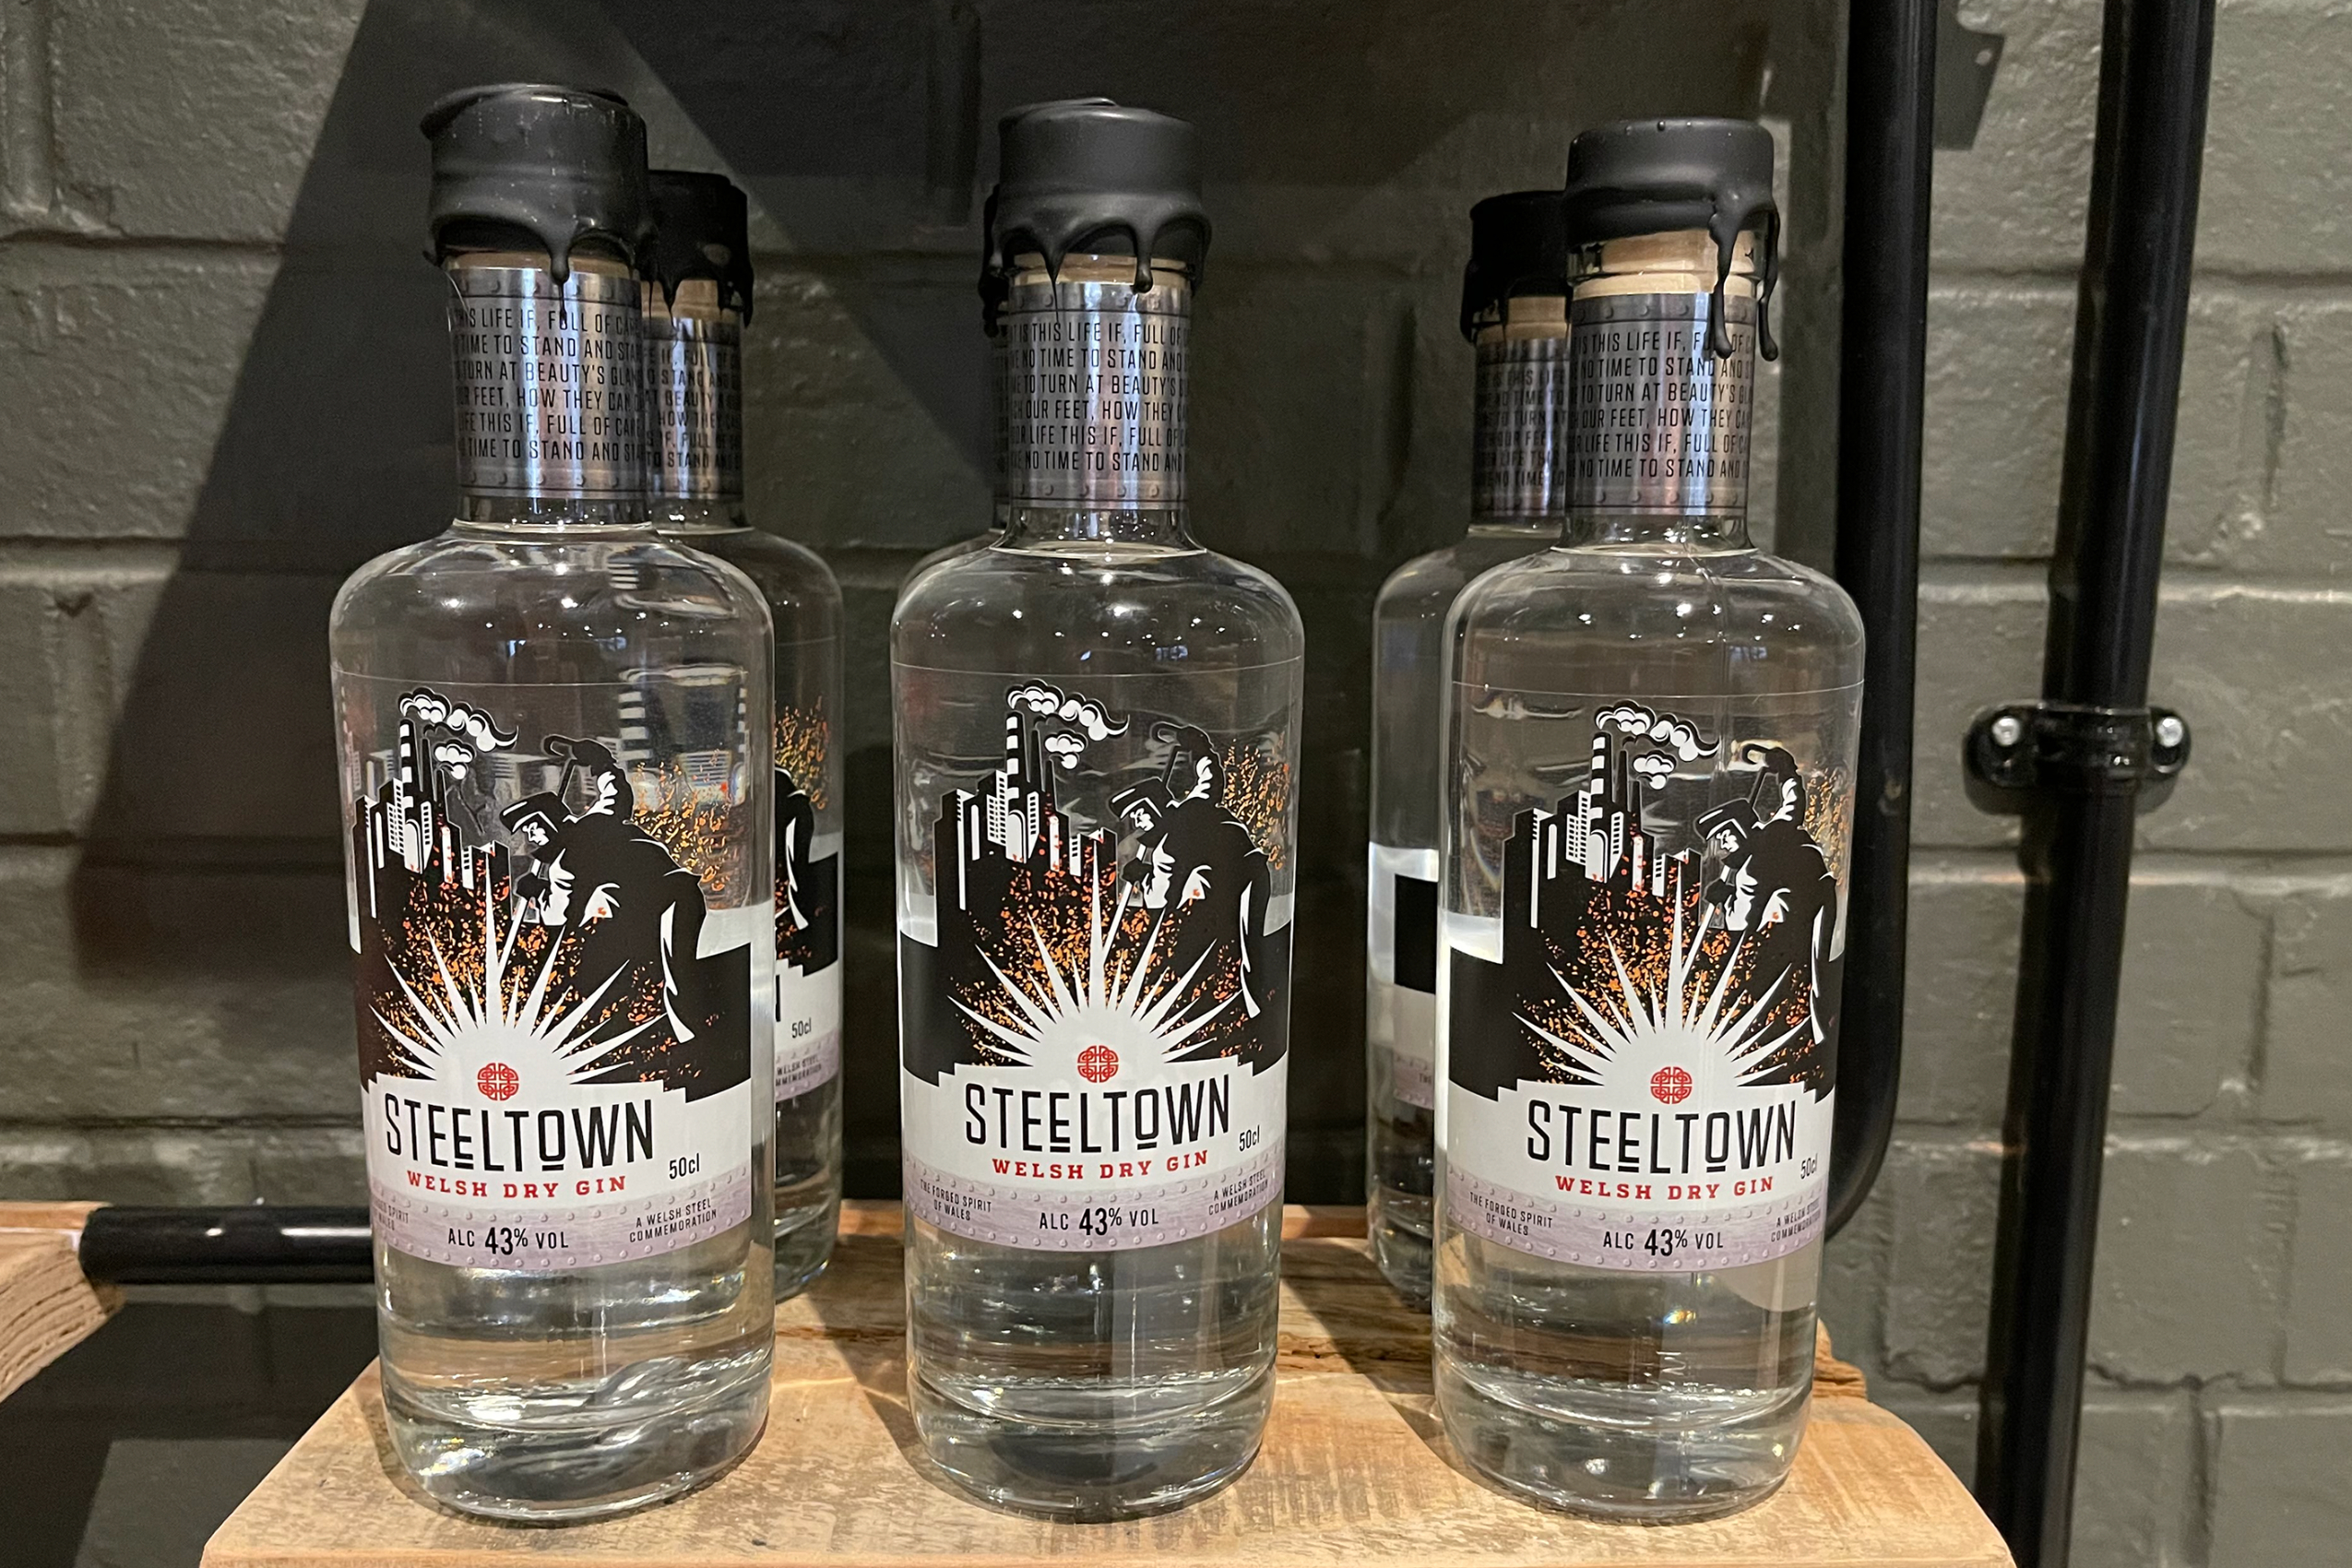 Introducing Steeltown Welsh Dry Gin with 13 delicate botanicals. Inspired by Miner's Fortnight in South Wales.